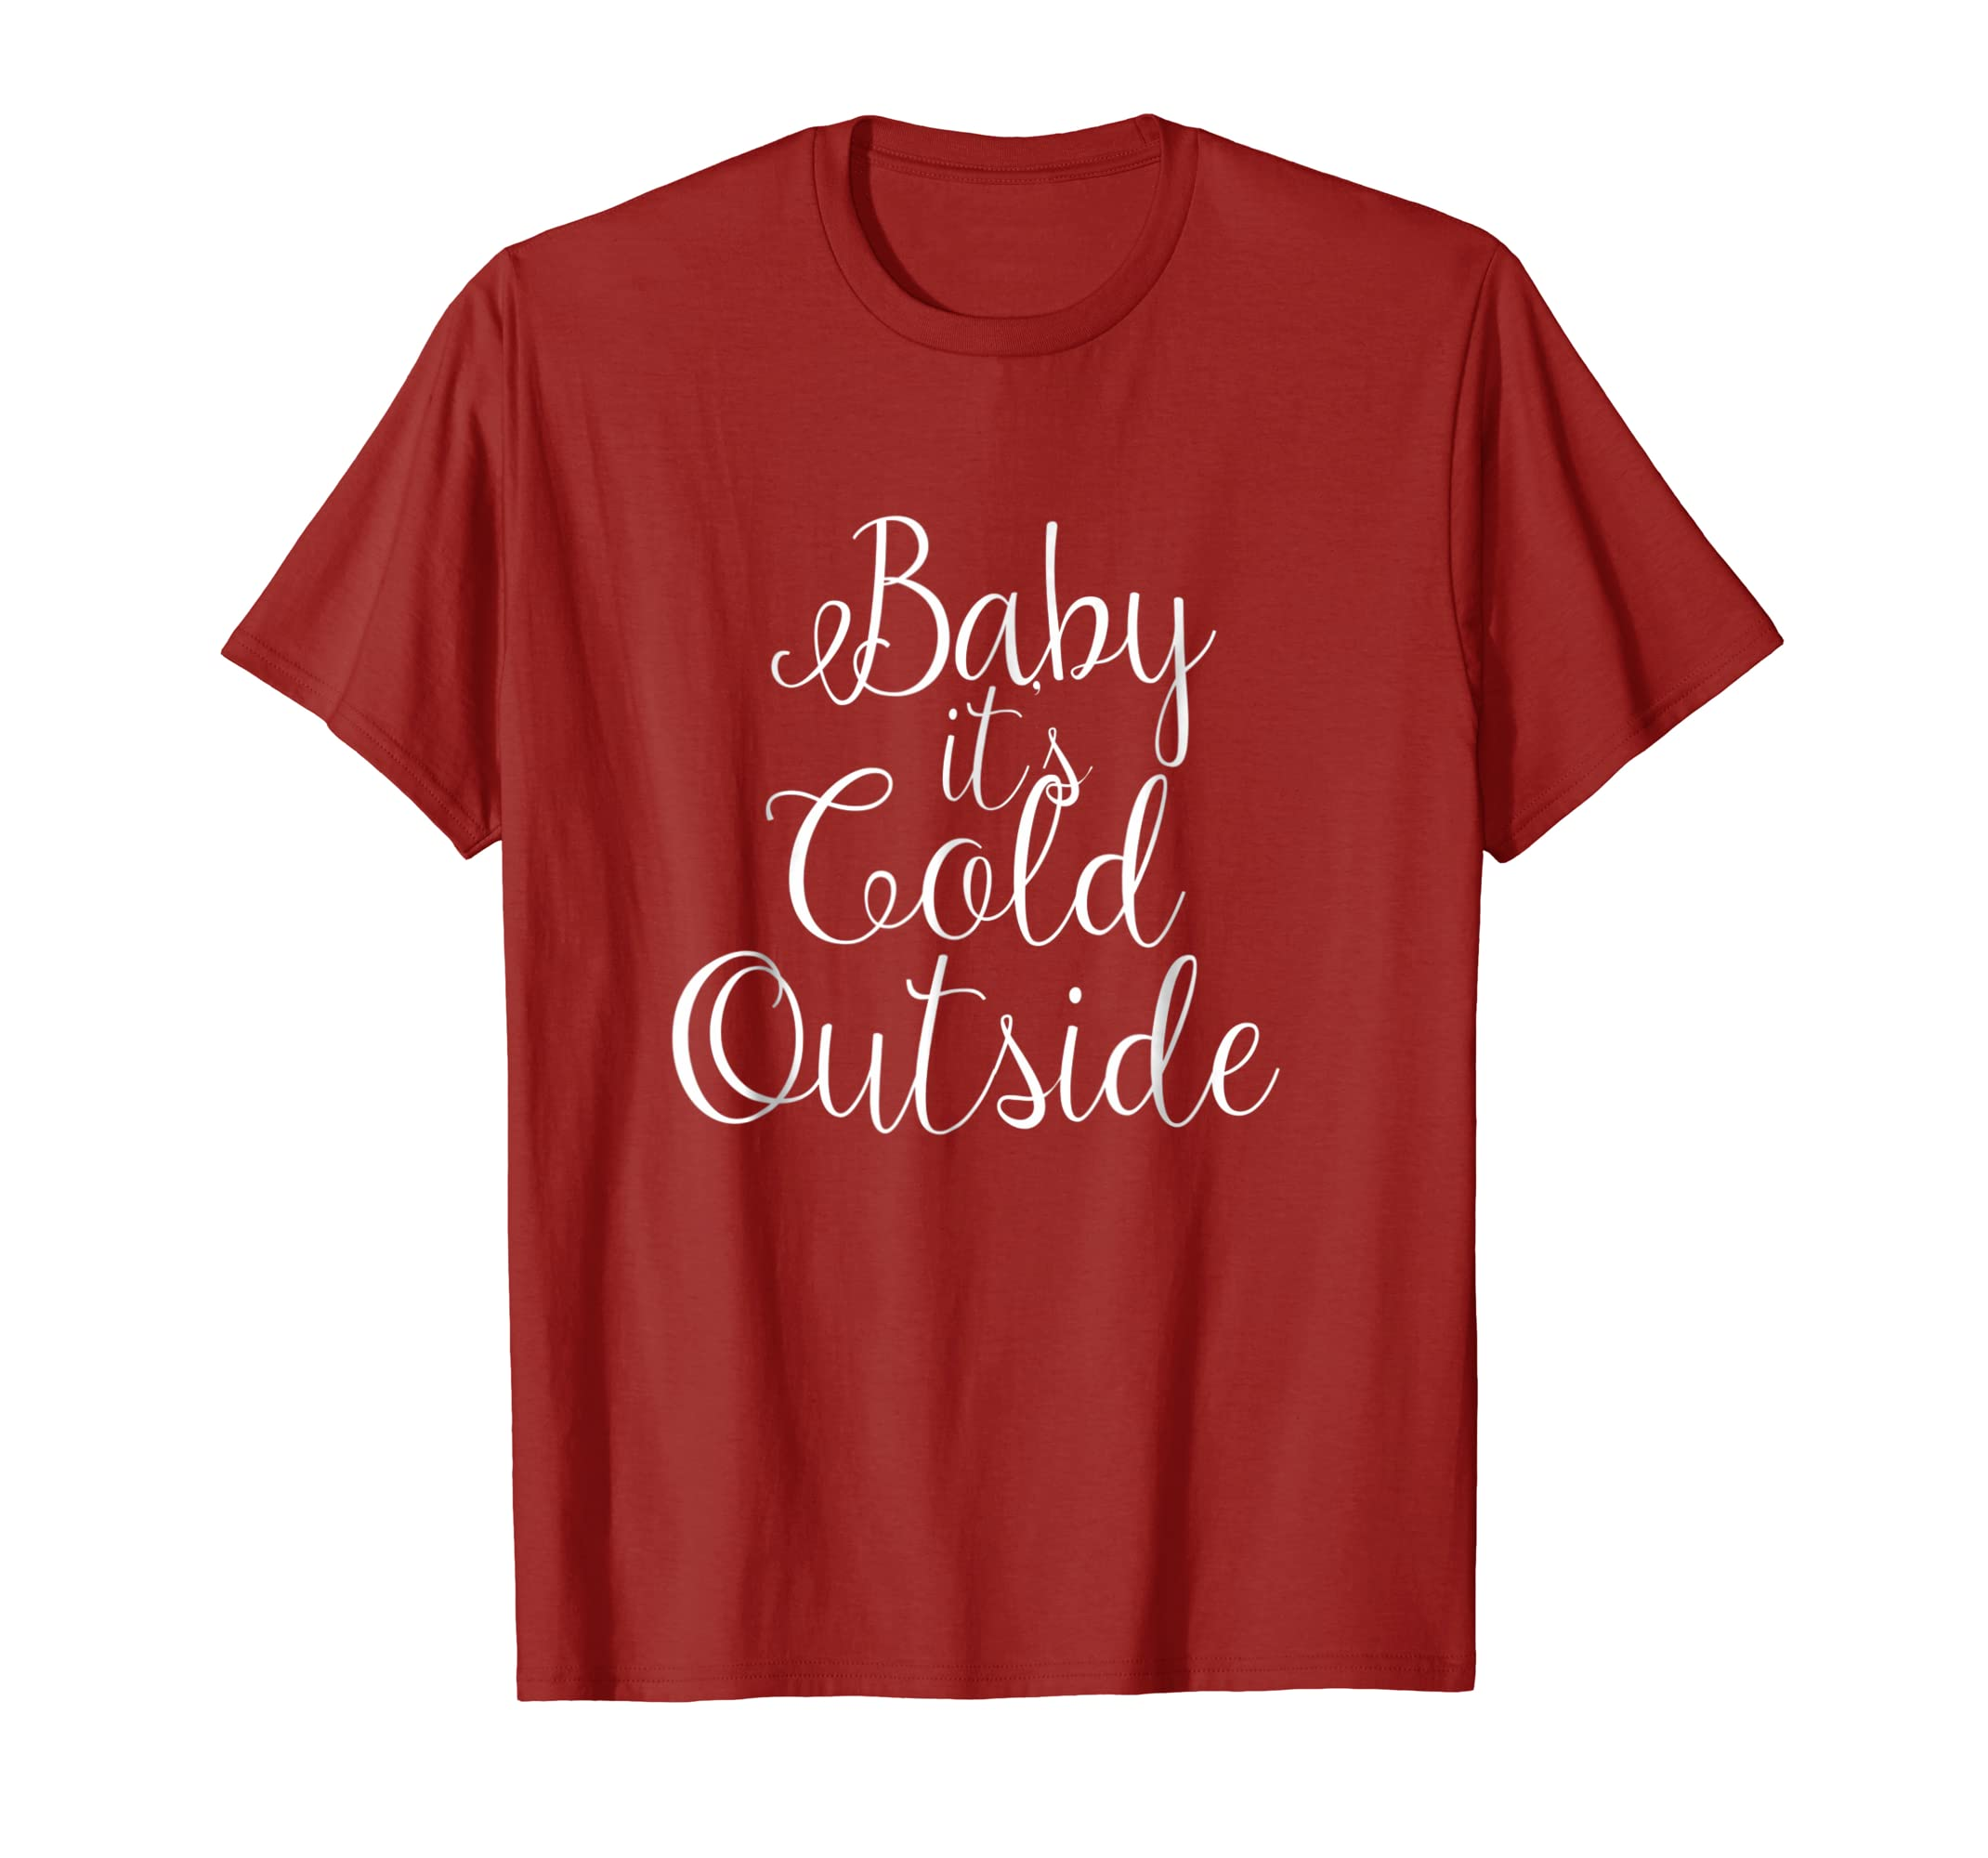 Christmas Sayings Funny.Baby It S Cold Outside Funny Christmas Sayings Xmas T Shirt Xacutara